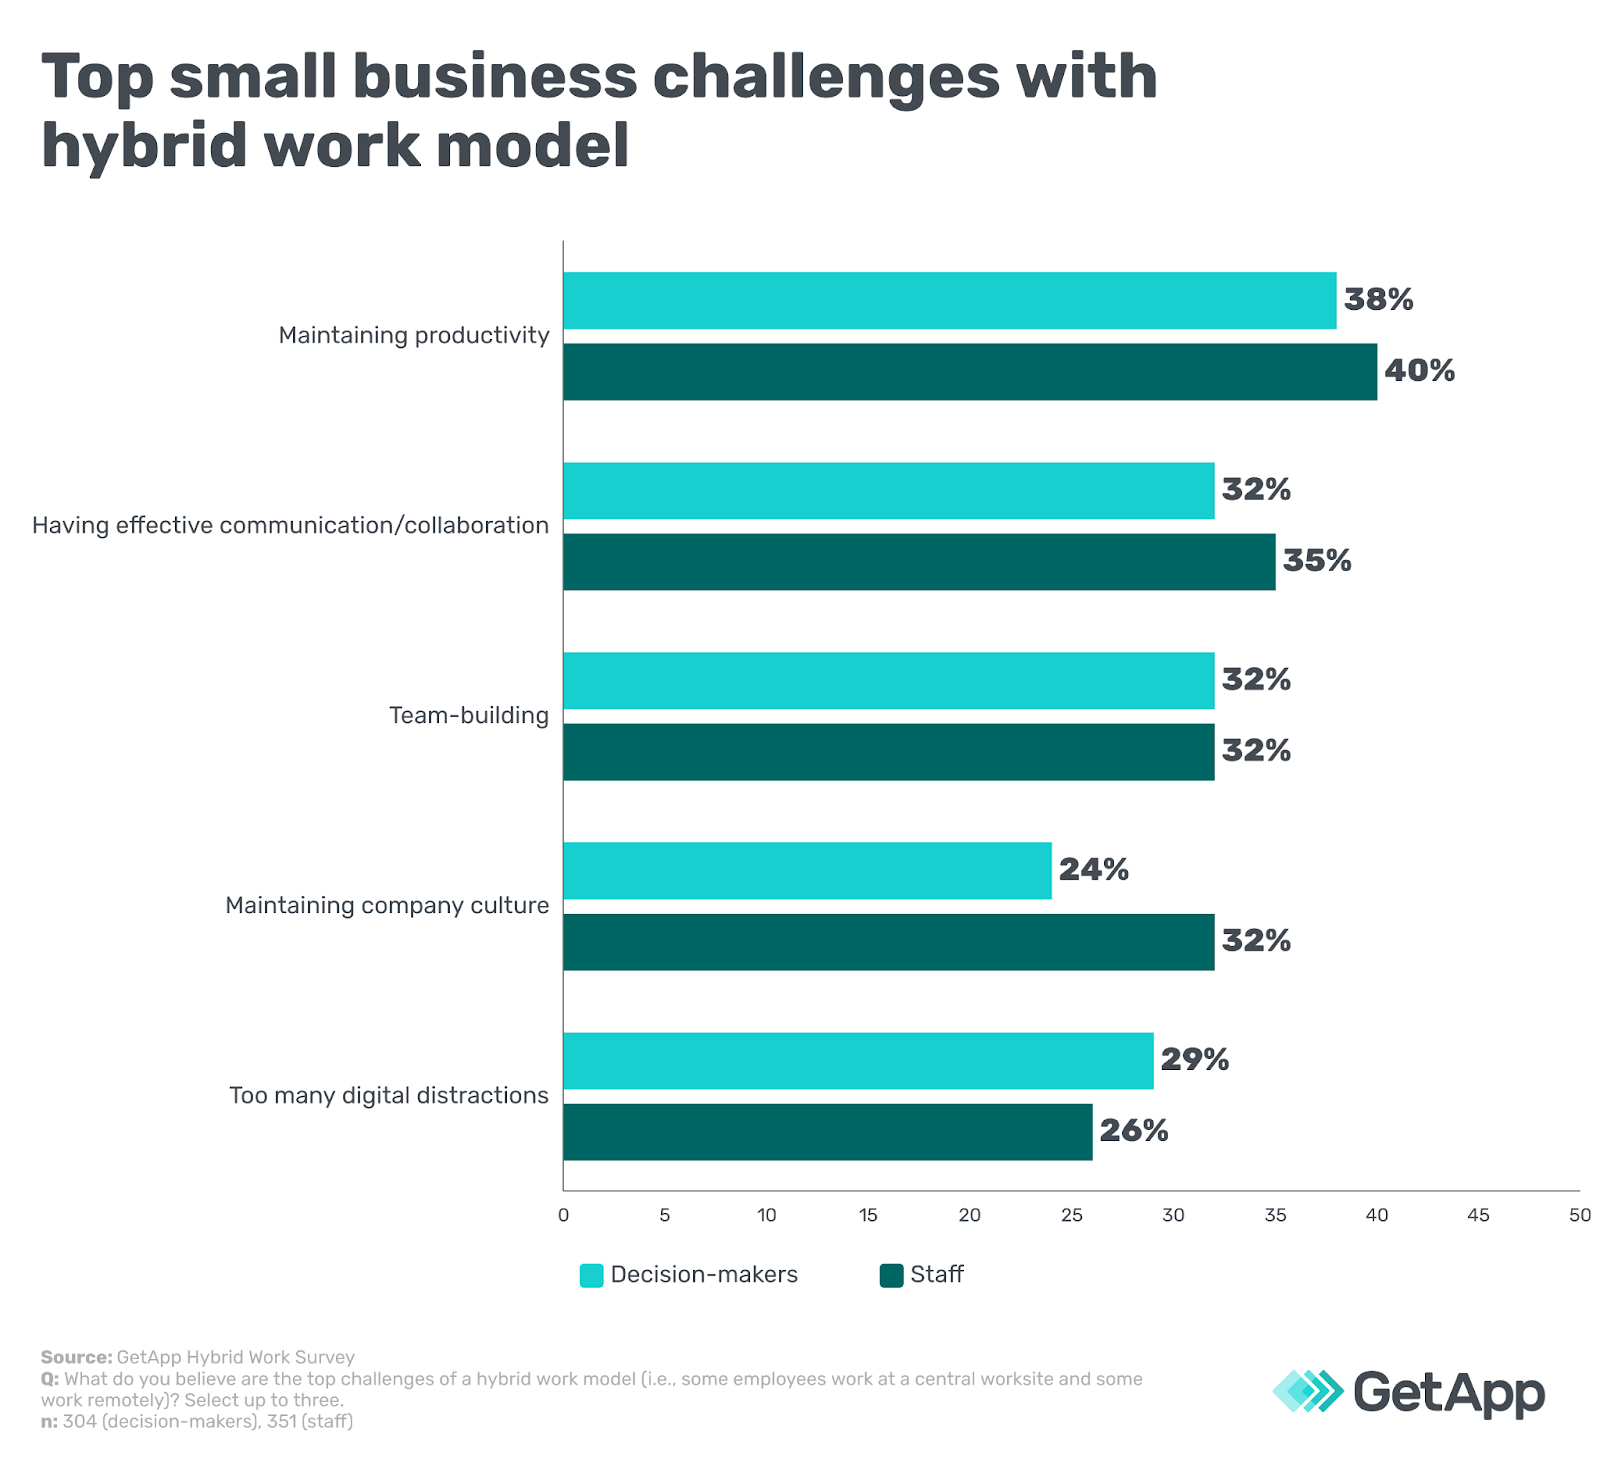 Top small business challenges with hybrid work model